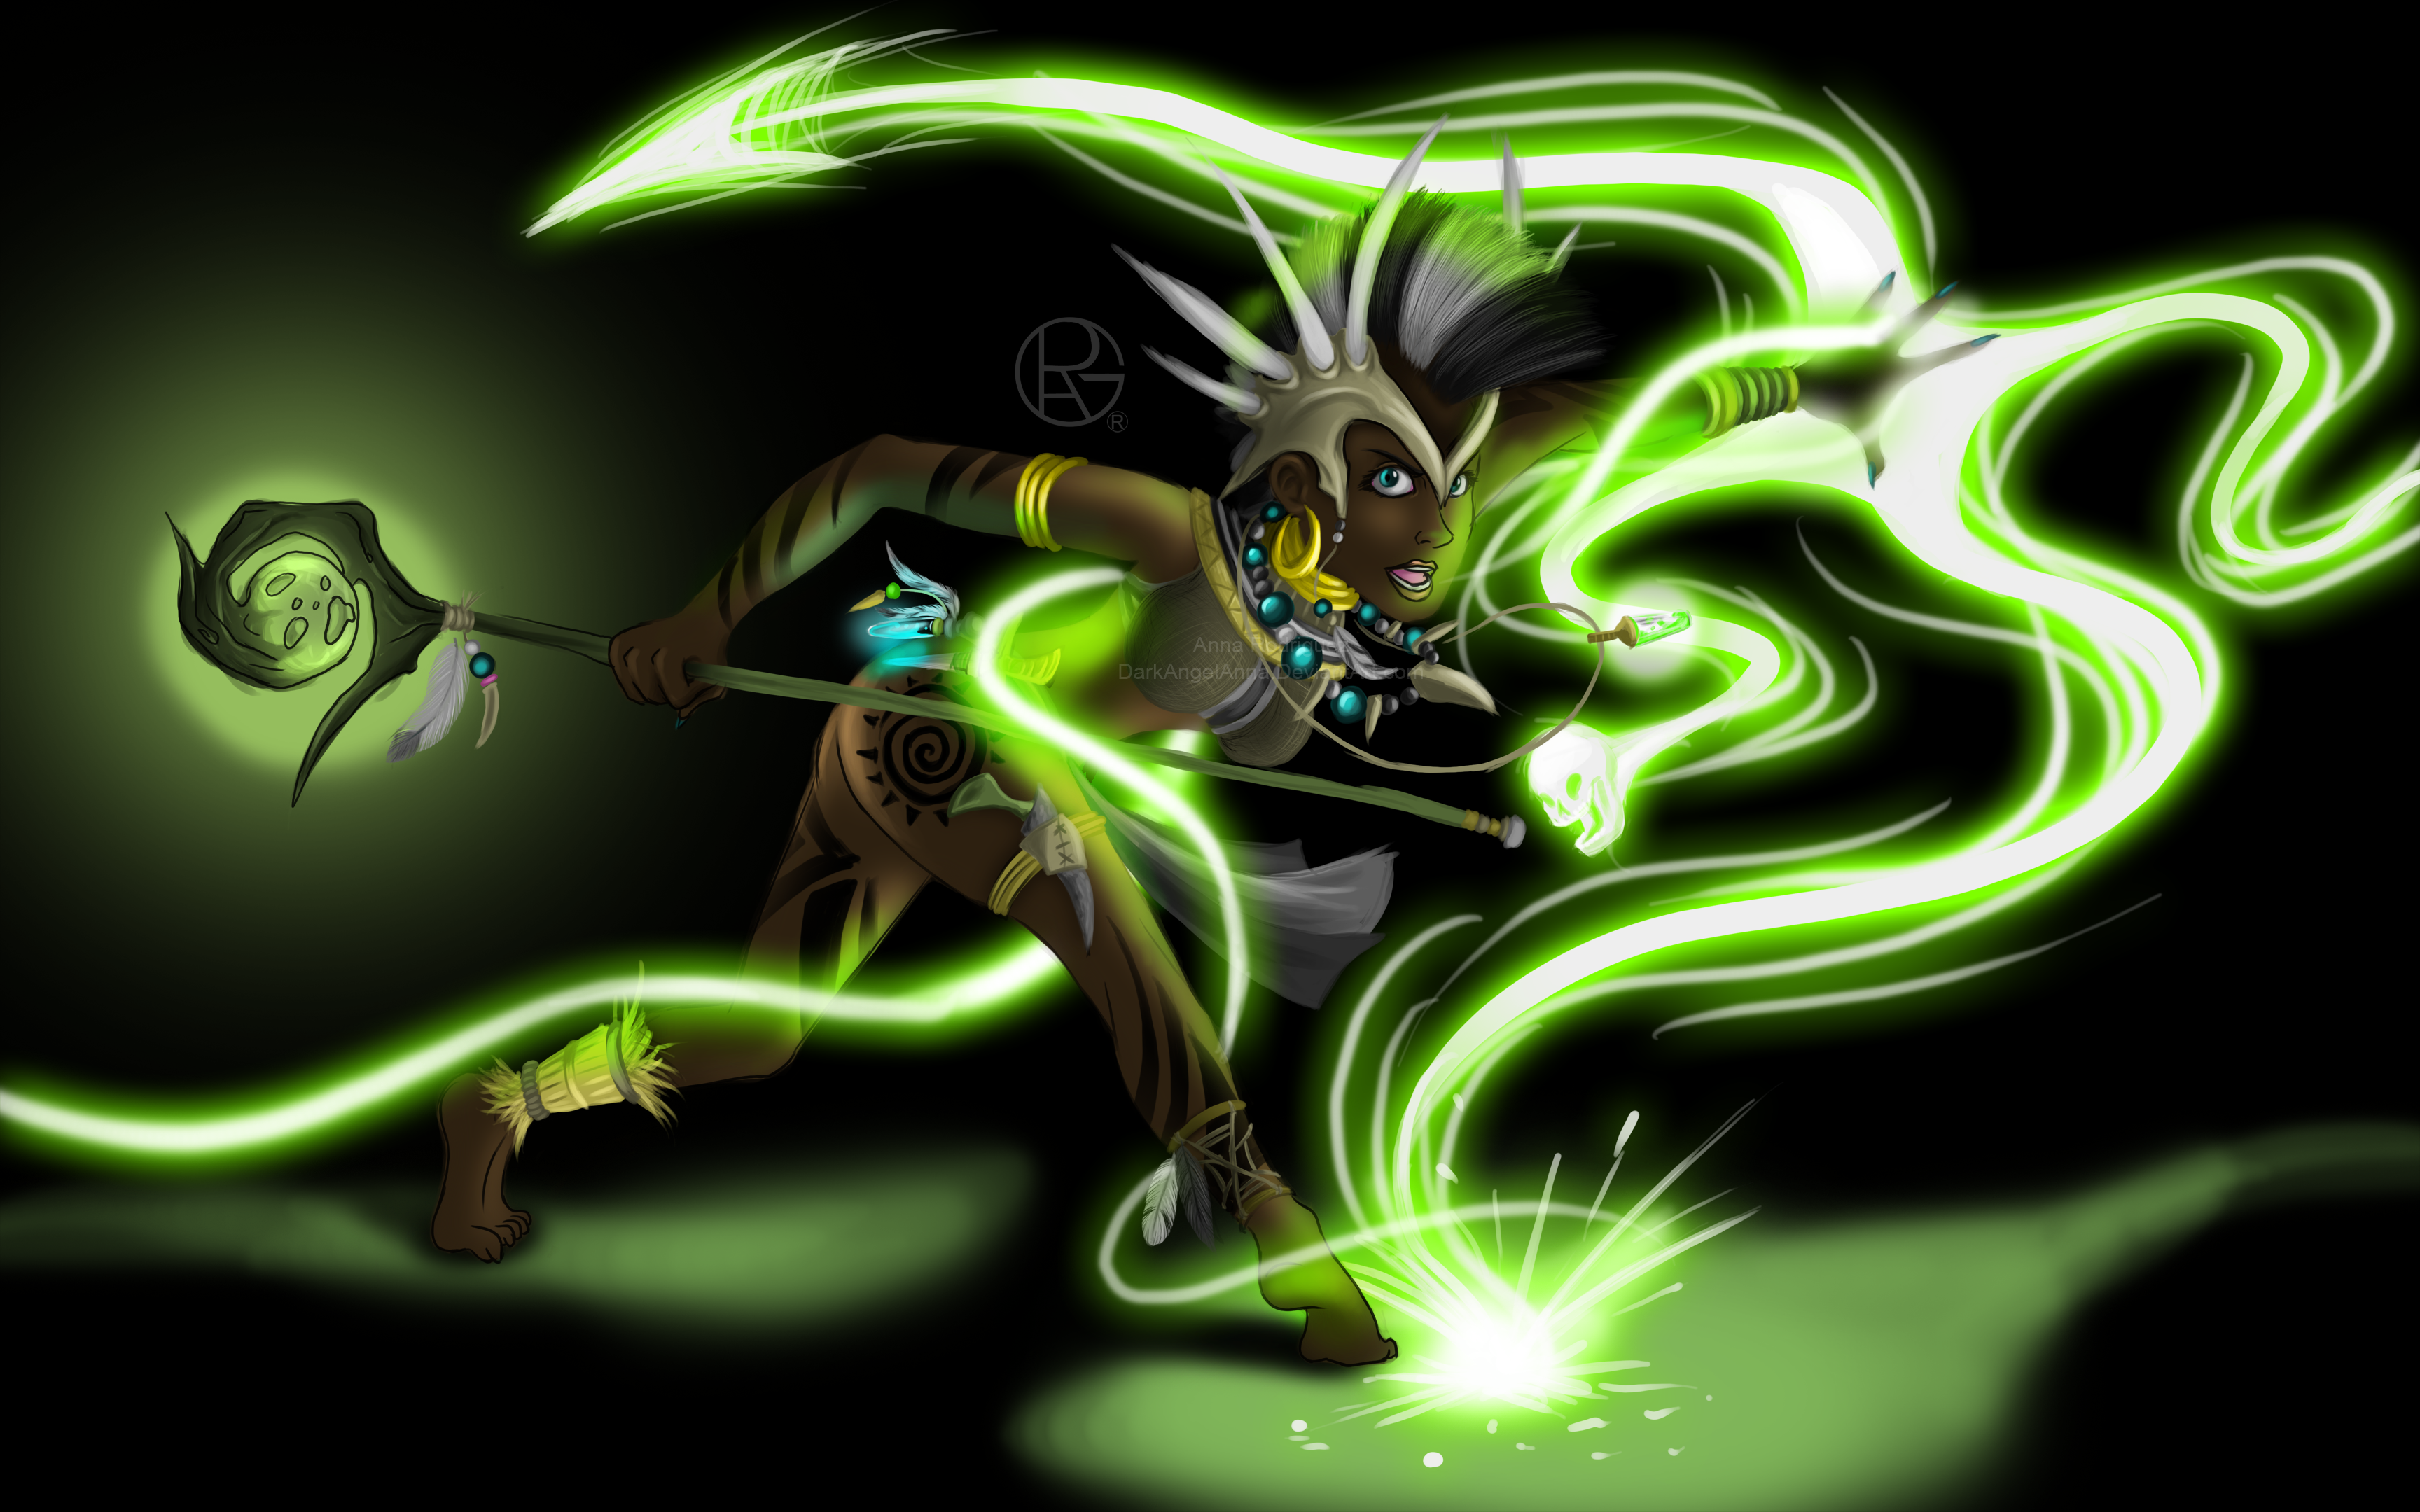 Zecora The Witch Doctor by Py-Bun on DeviantArt